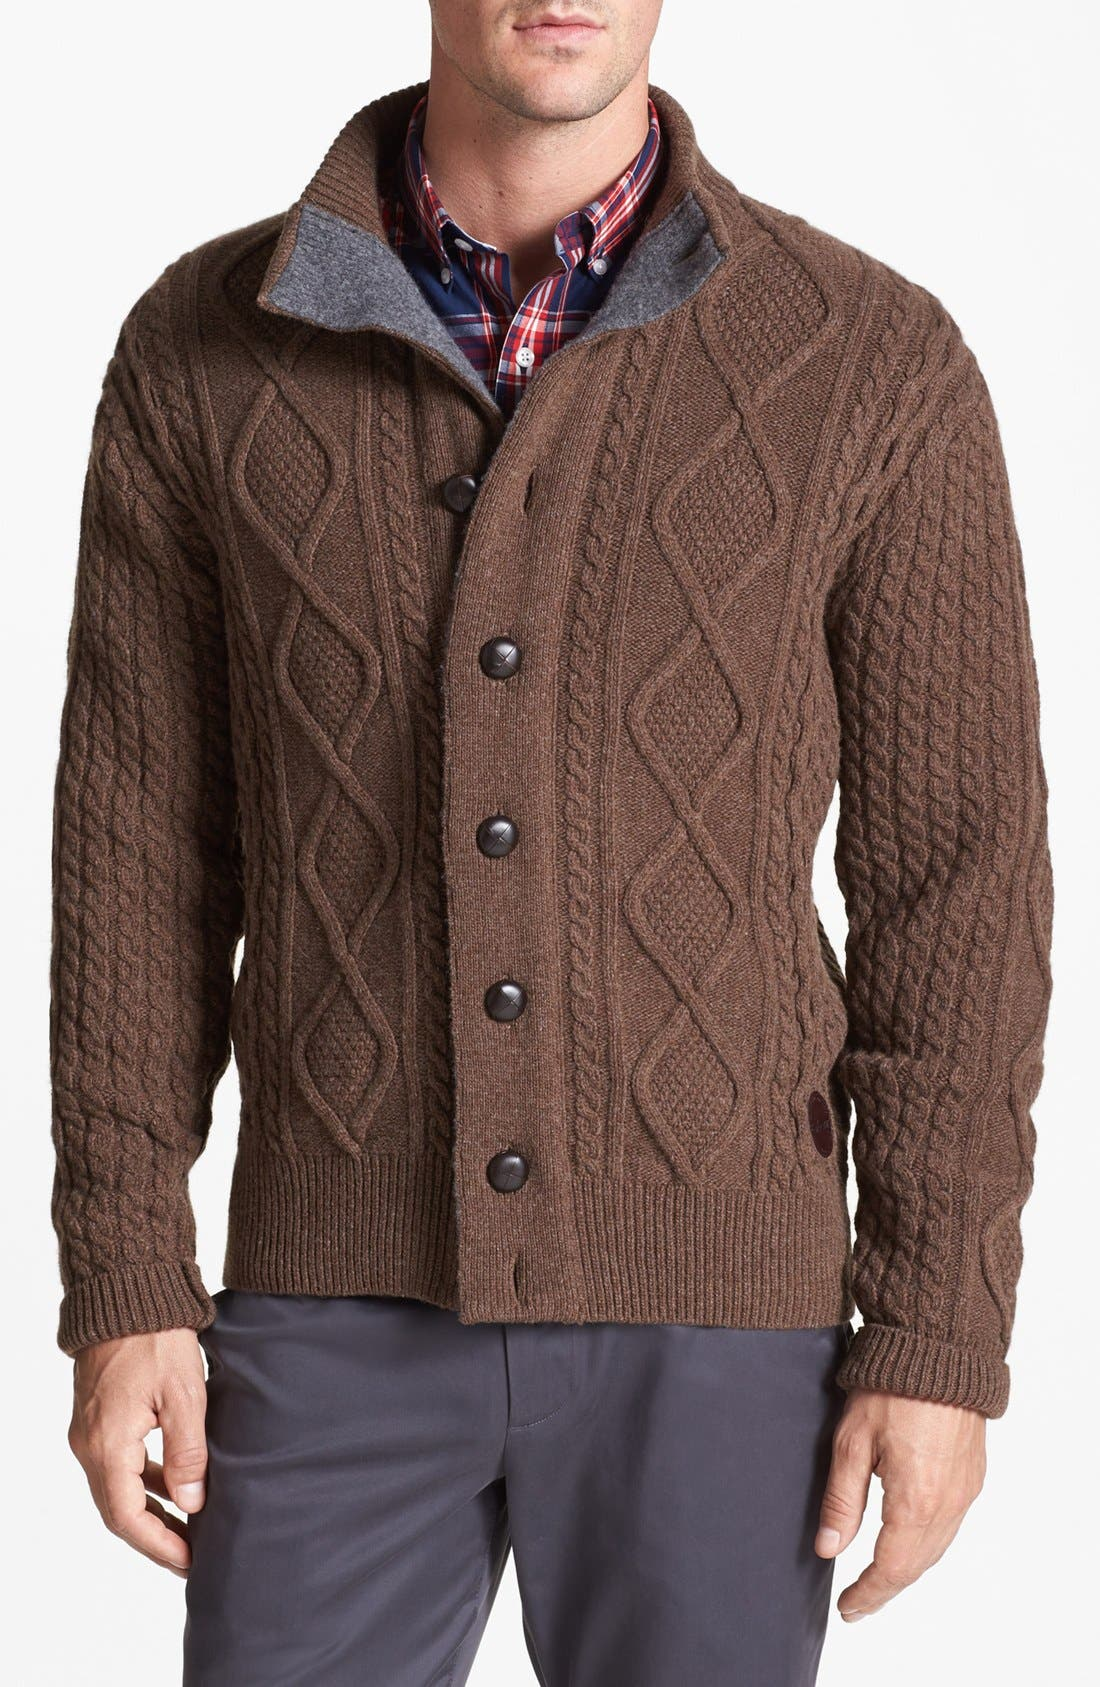 Main Image - Barbour Cable Knit Button Sweater & Bonobos Straight Leg Chinos